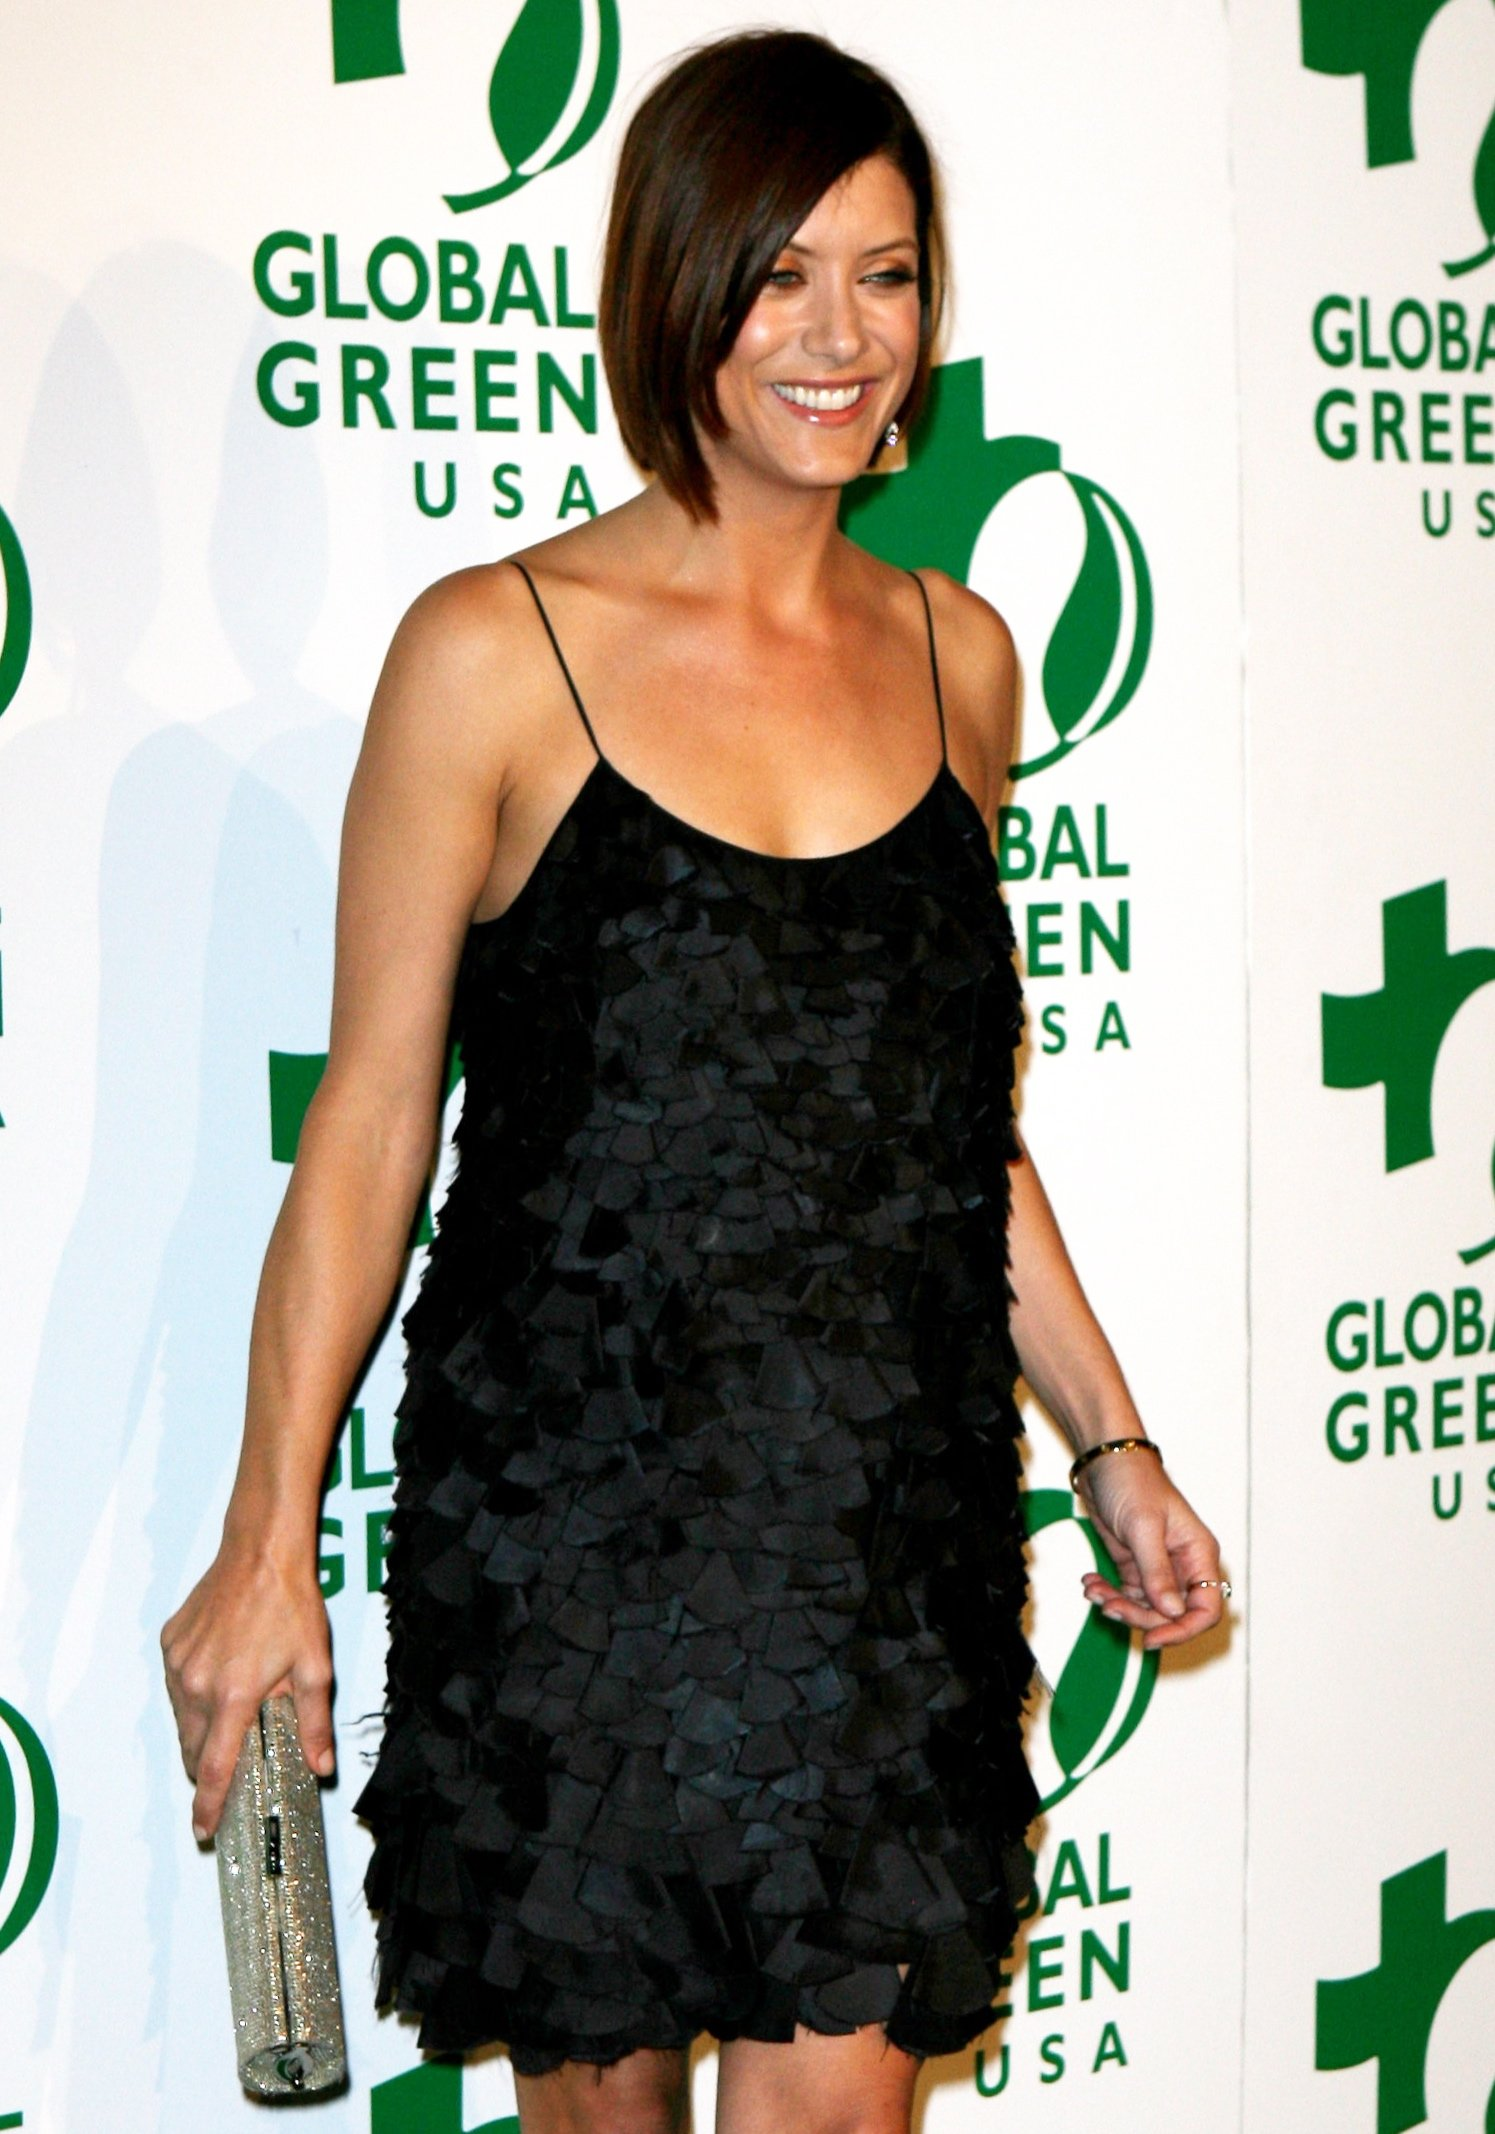 53287_Celebutopia-Kate_Walsh-Global_Green_Pre-Oscar_Party-07_122_656lo.JPG